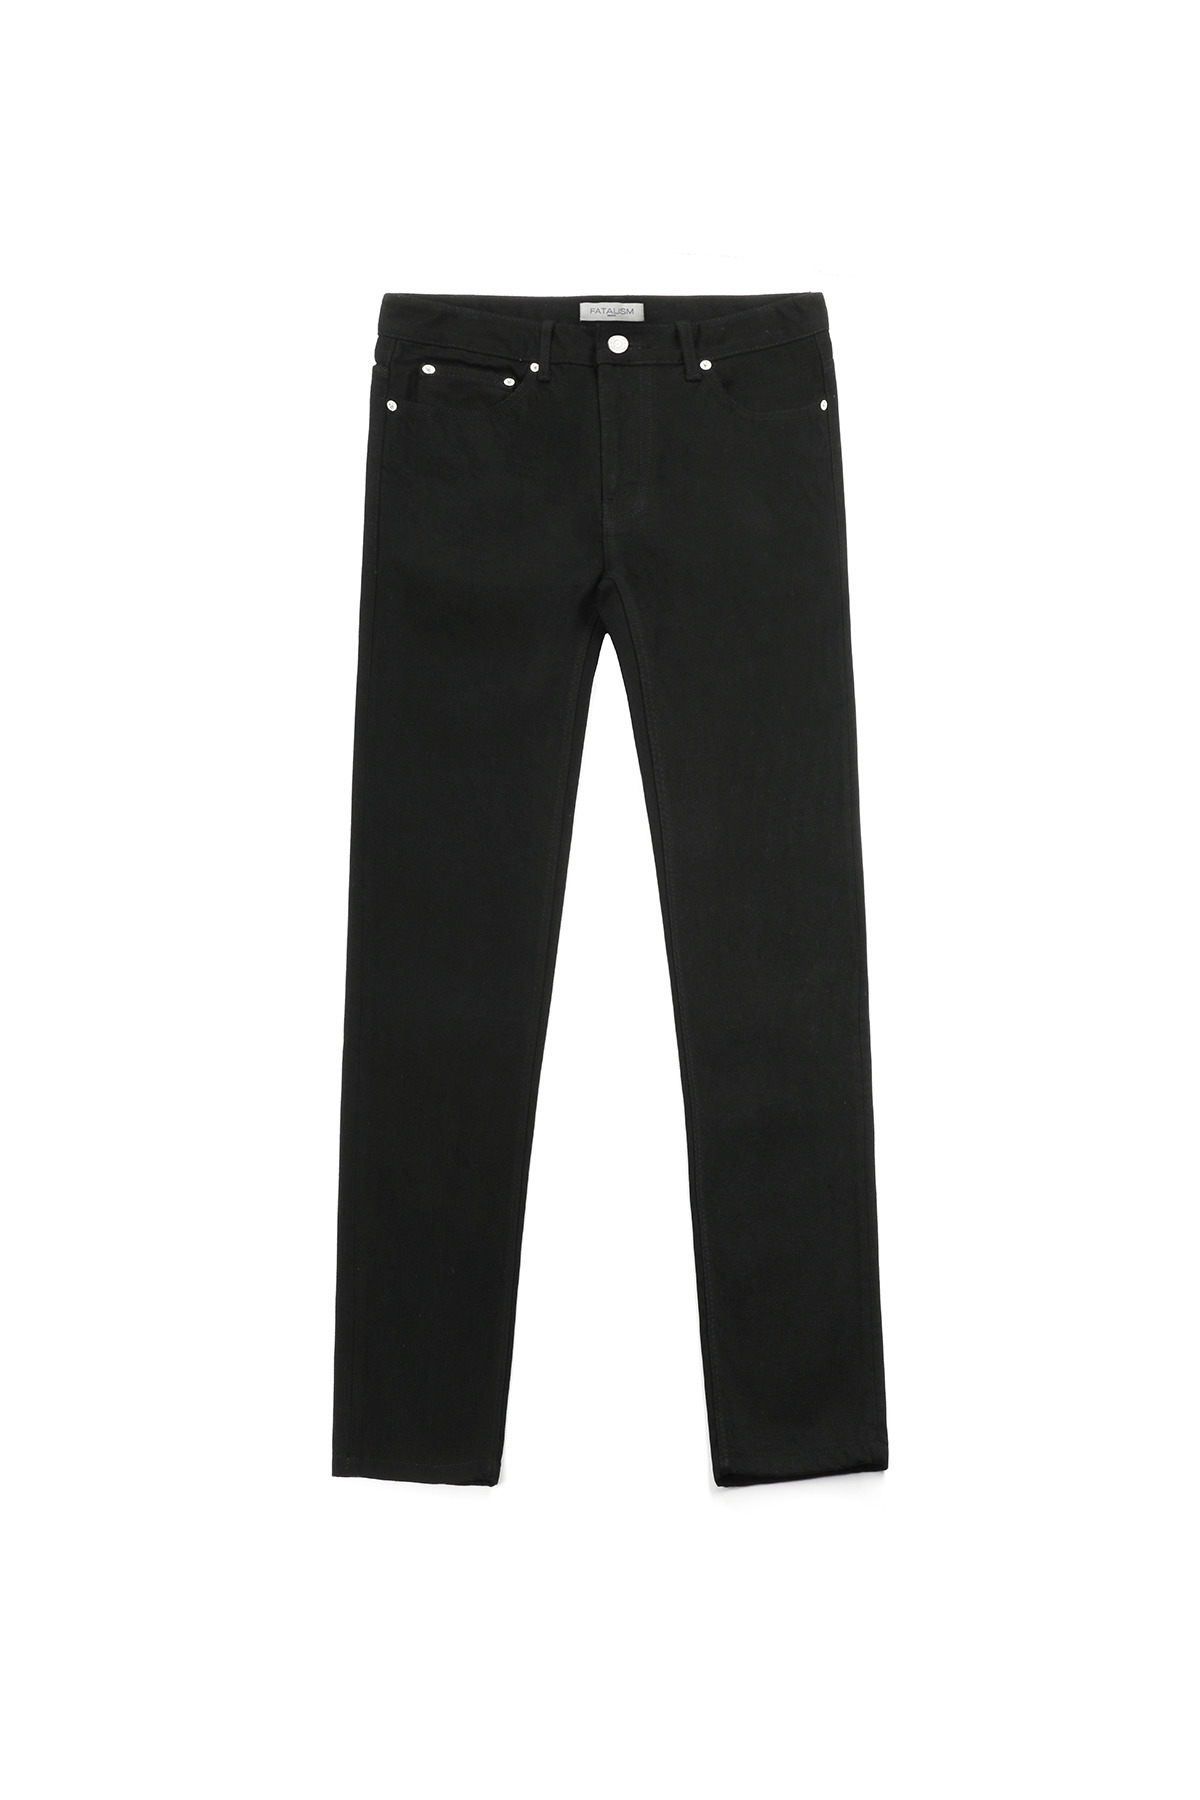 페이탈리즘 #0218 Black straight crop jean